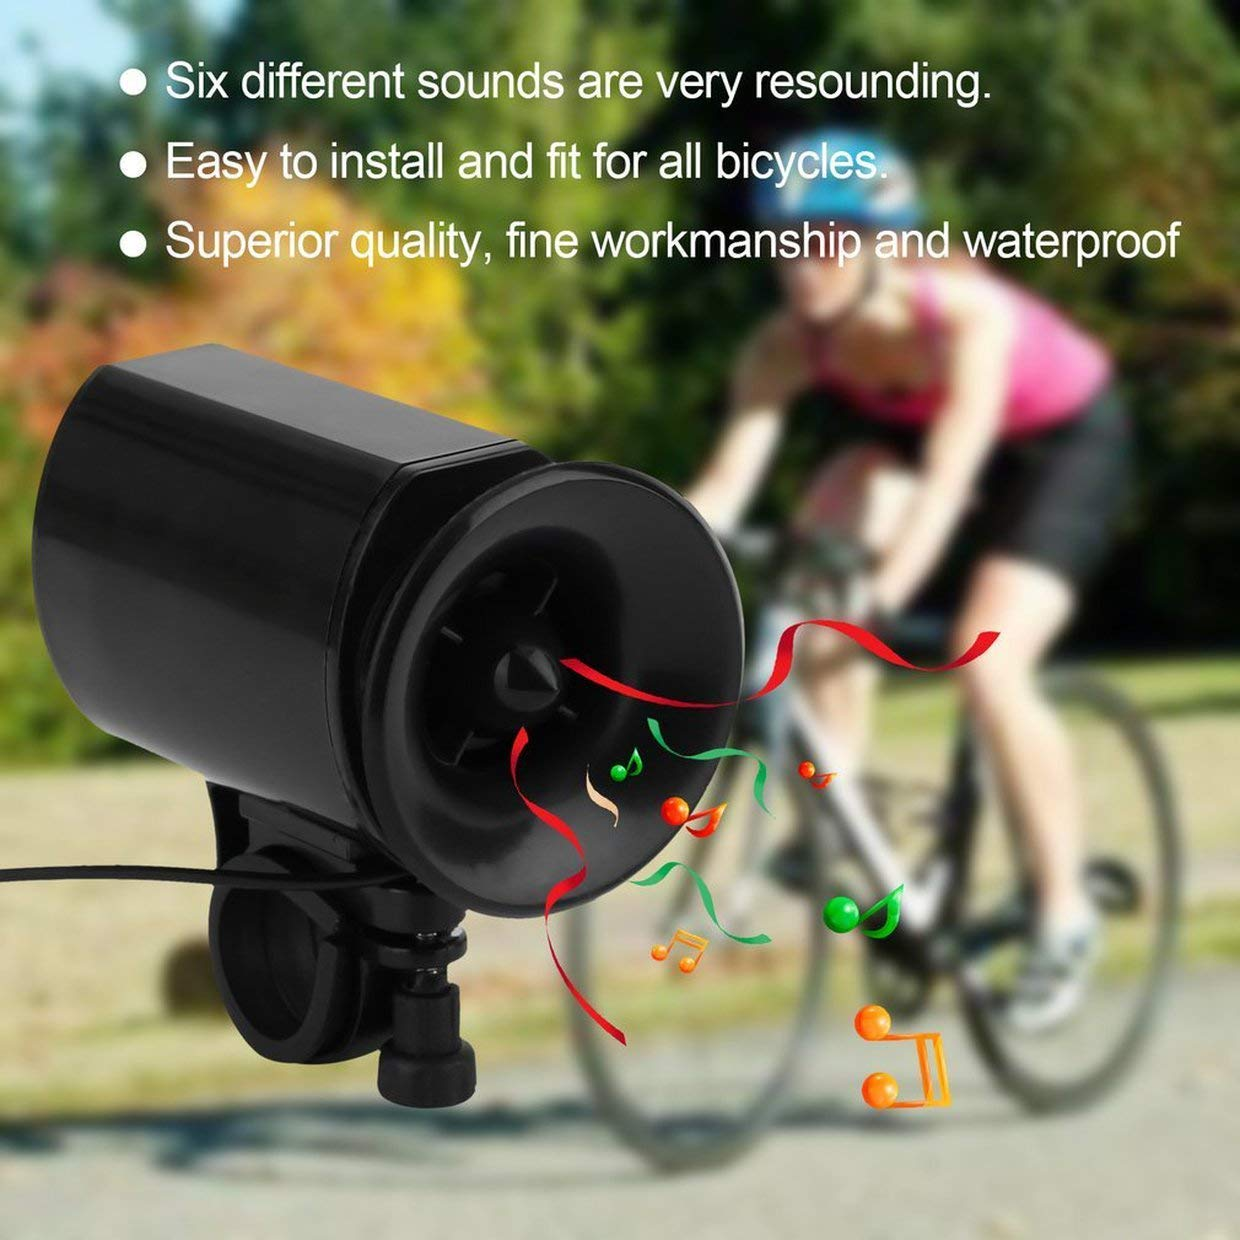 Qewmsg 6 Sounds Ultra-Loud Bicycle Bike Electronic Bell Horn Strong Sound Horn